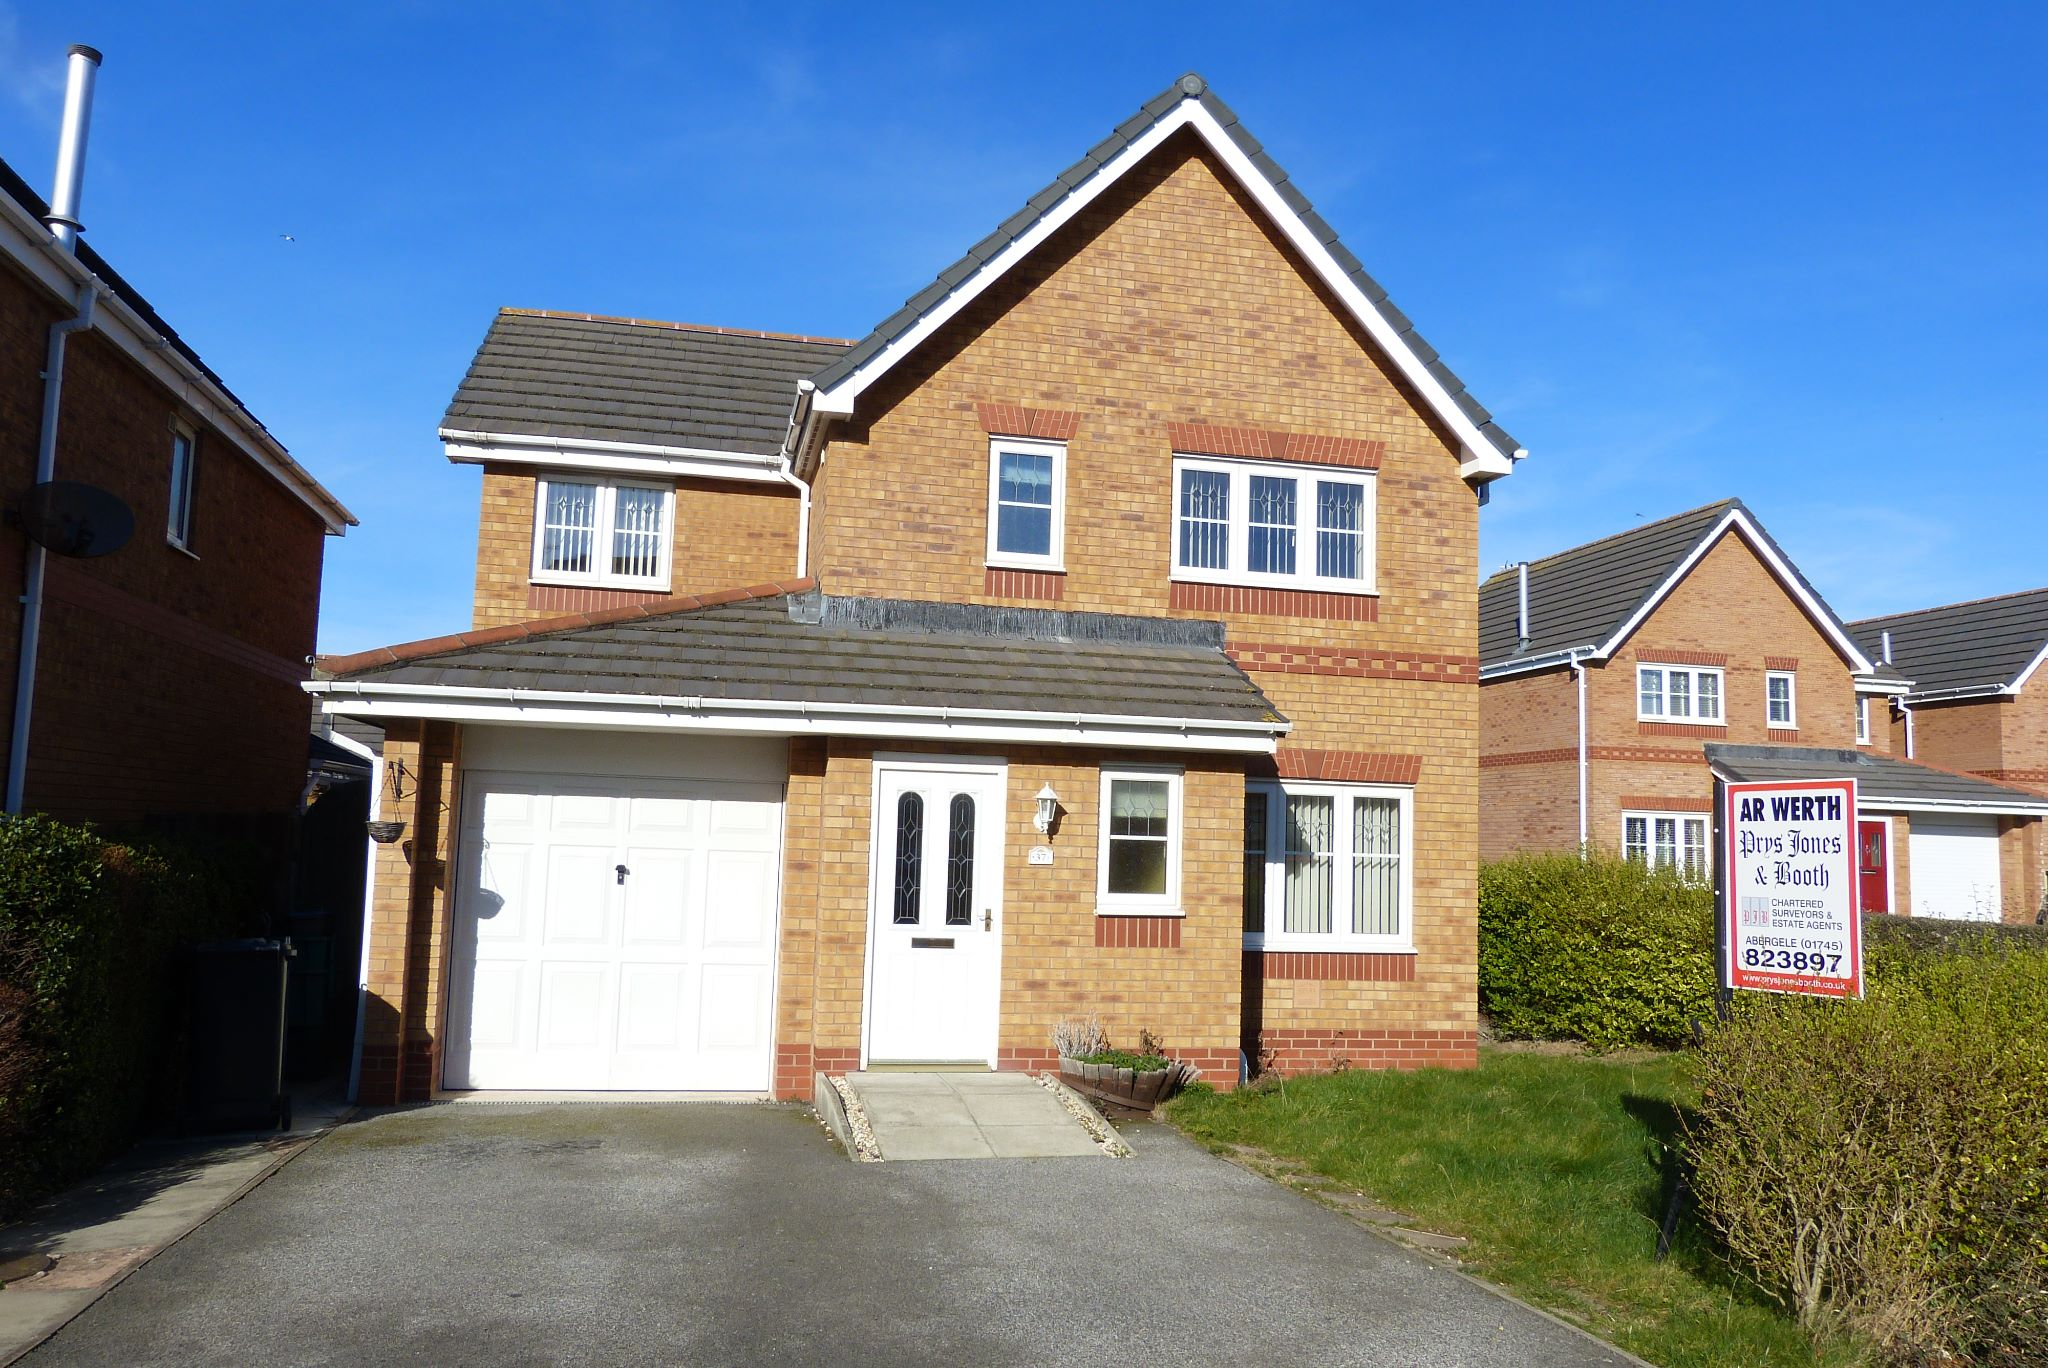 4 bedroom detached house For Sale in Abergele - Photograph 1